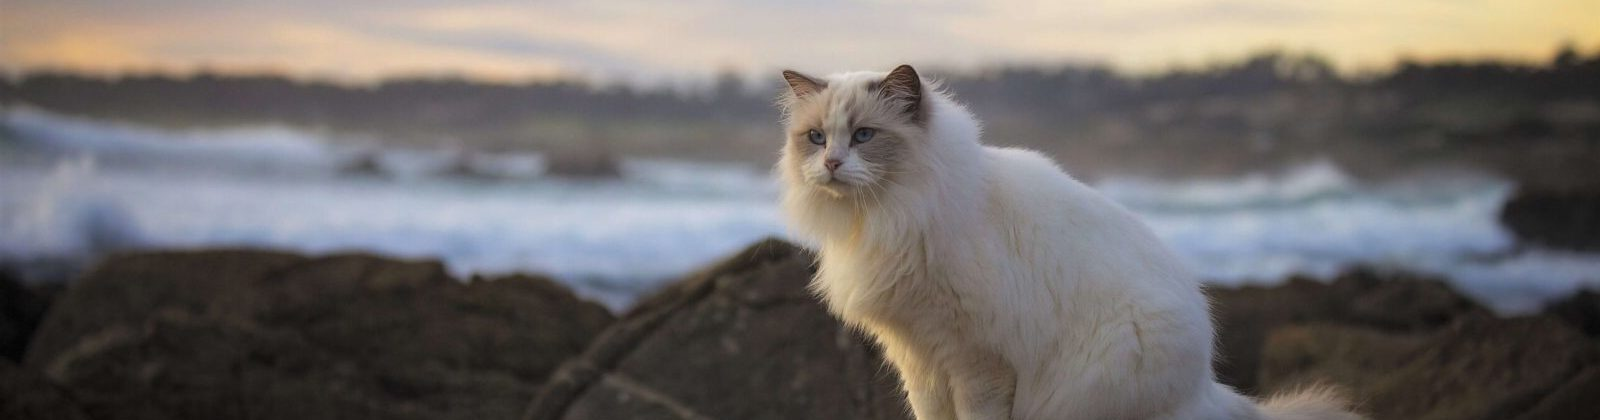 cat by water